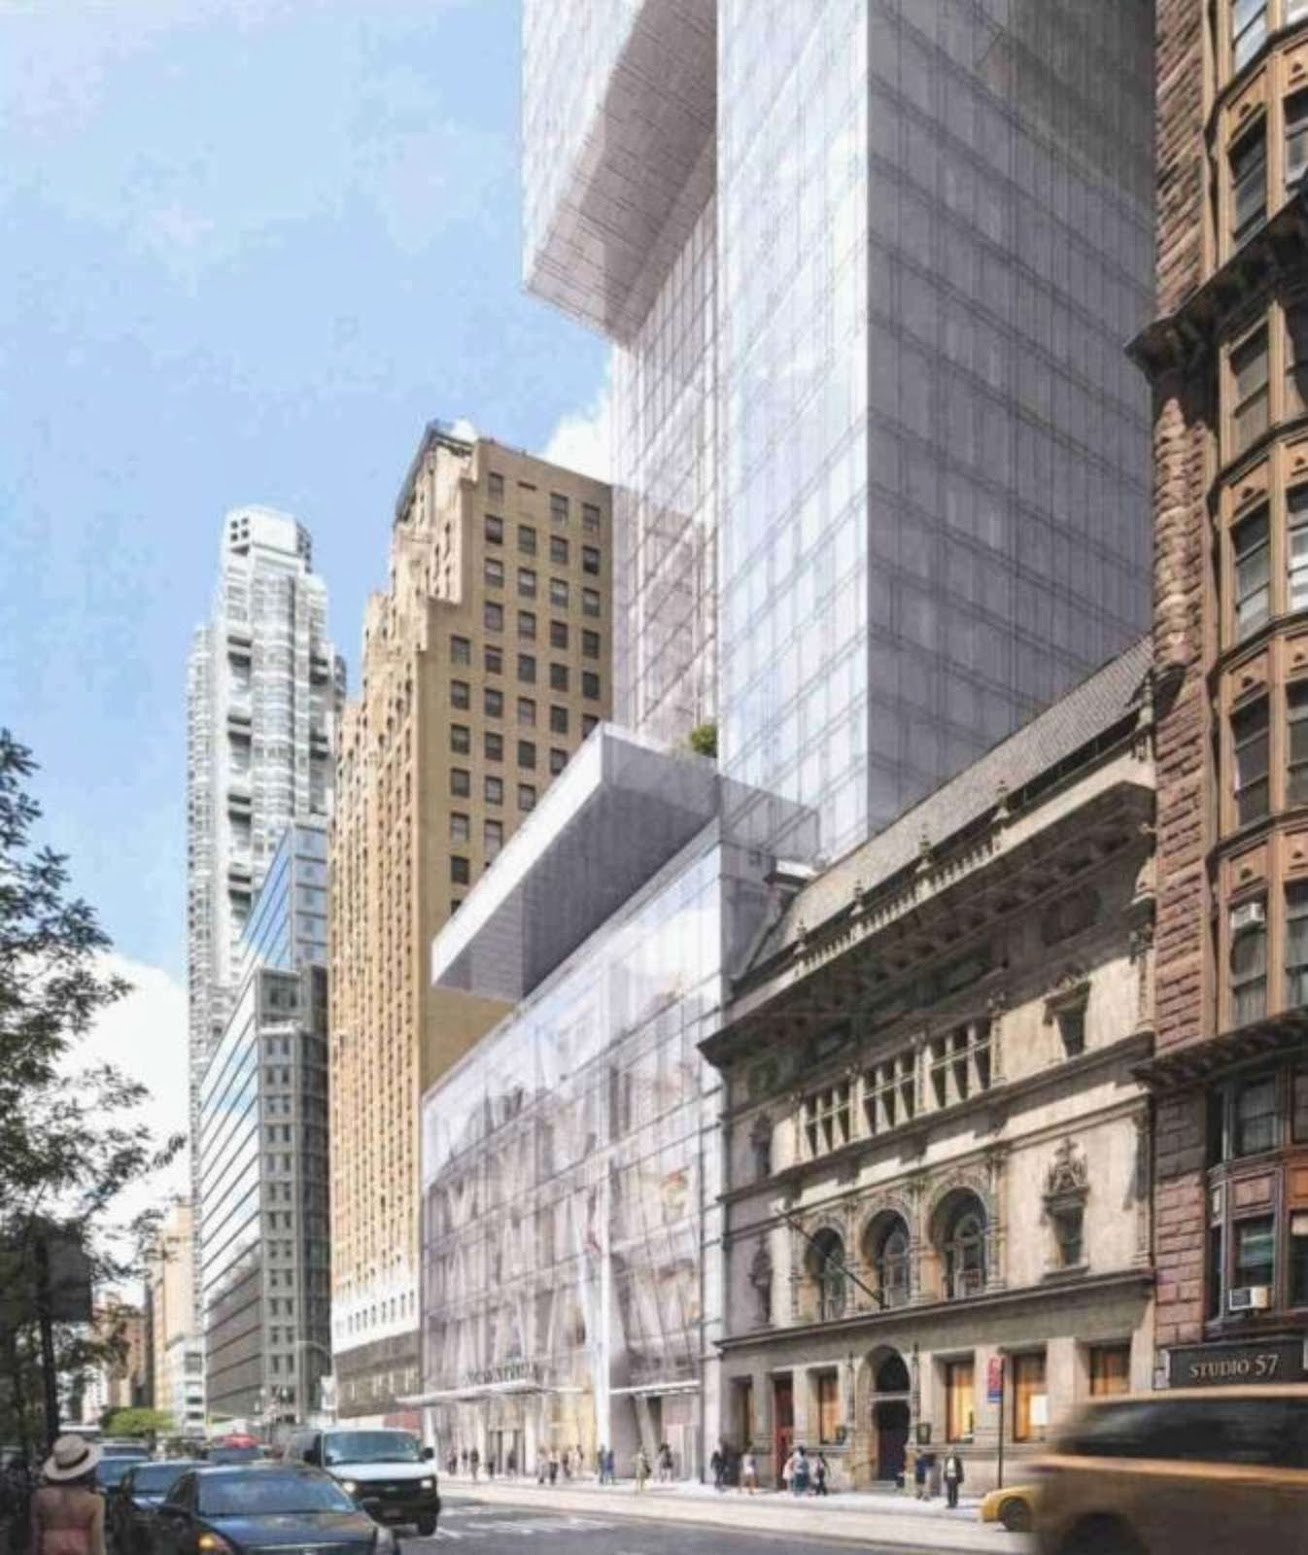 New York, Stati Uniti: [215 WEST 57TH STREET BY ADRIAN SMITH + GORDON GILL ARCHITECTURE]